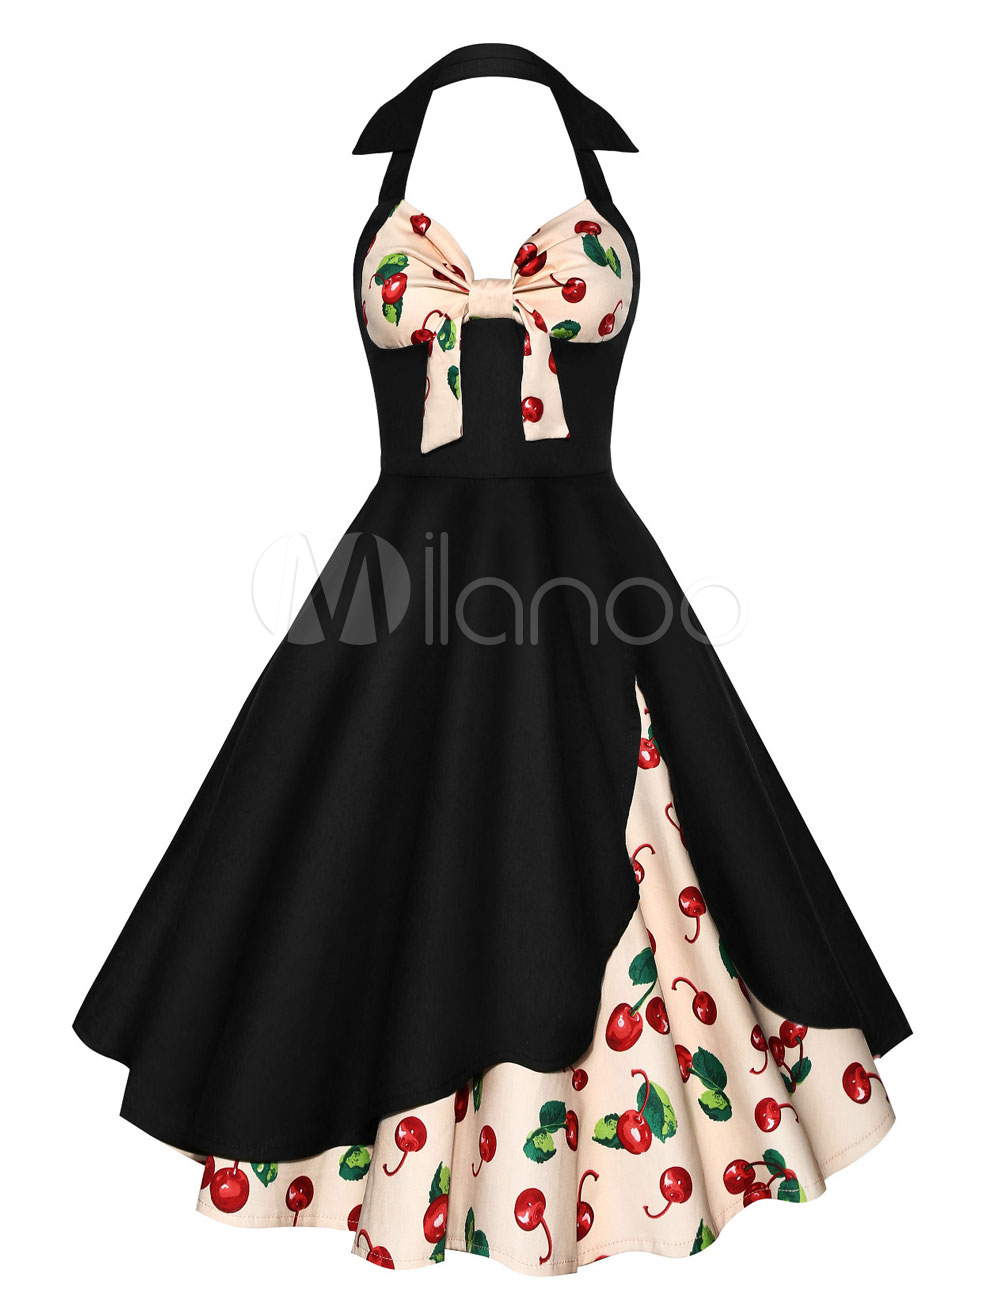 Buy Black Vintage Dress Halter Sleeveless Knotted Floral Print Layered Women's Dresses for $33.24 in Milanoo store